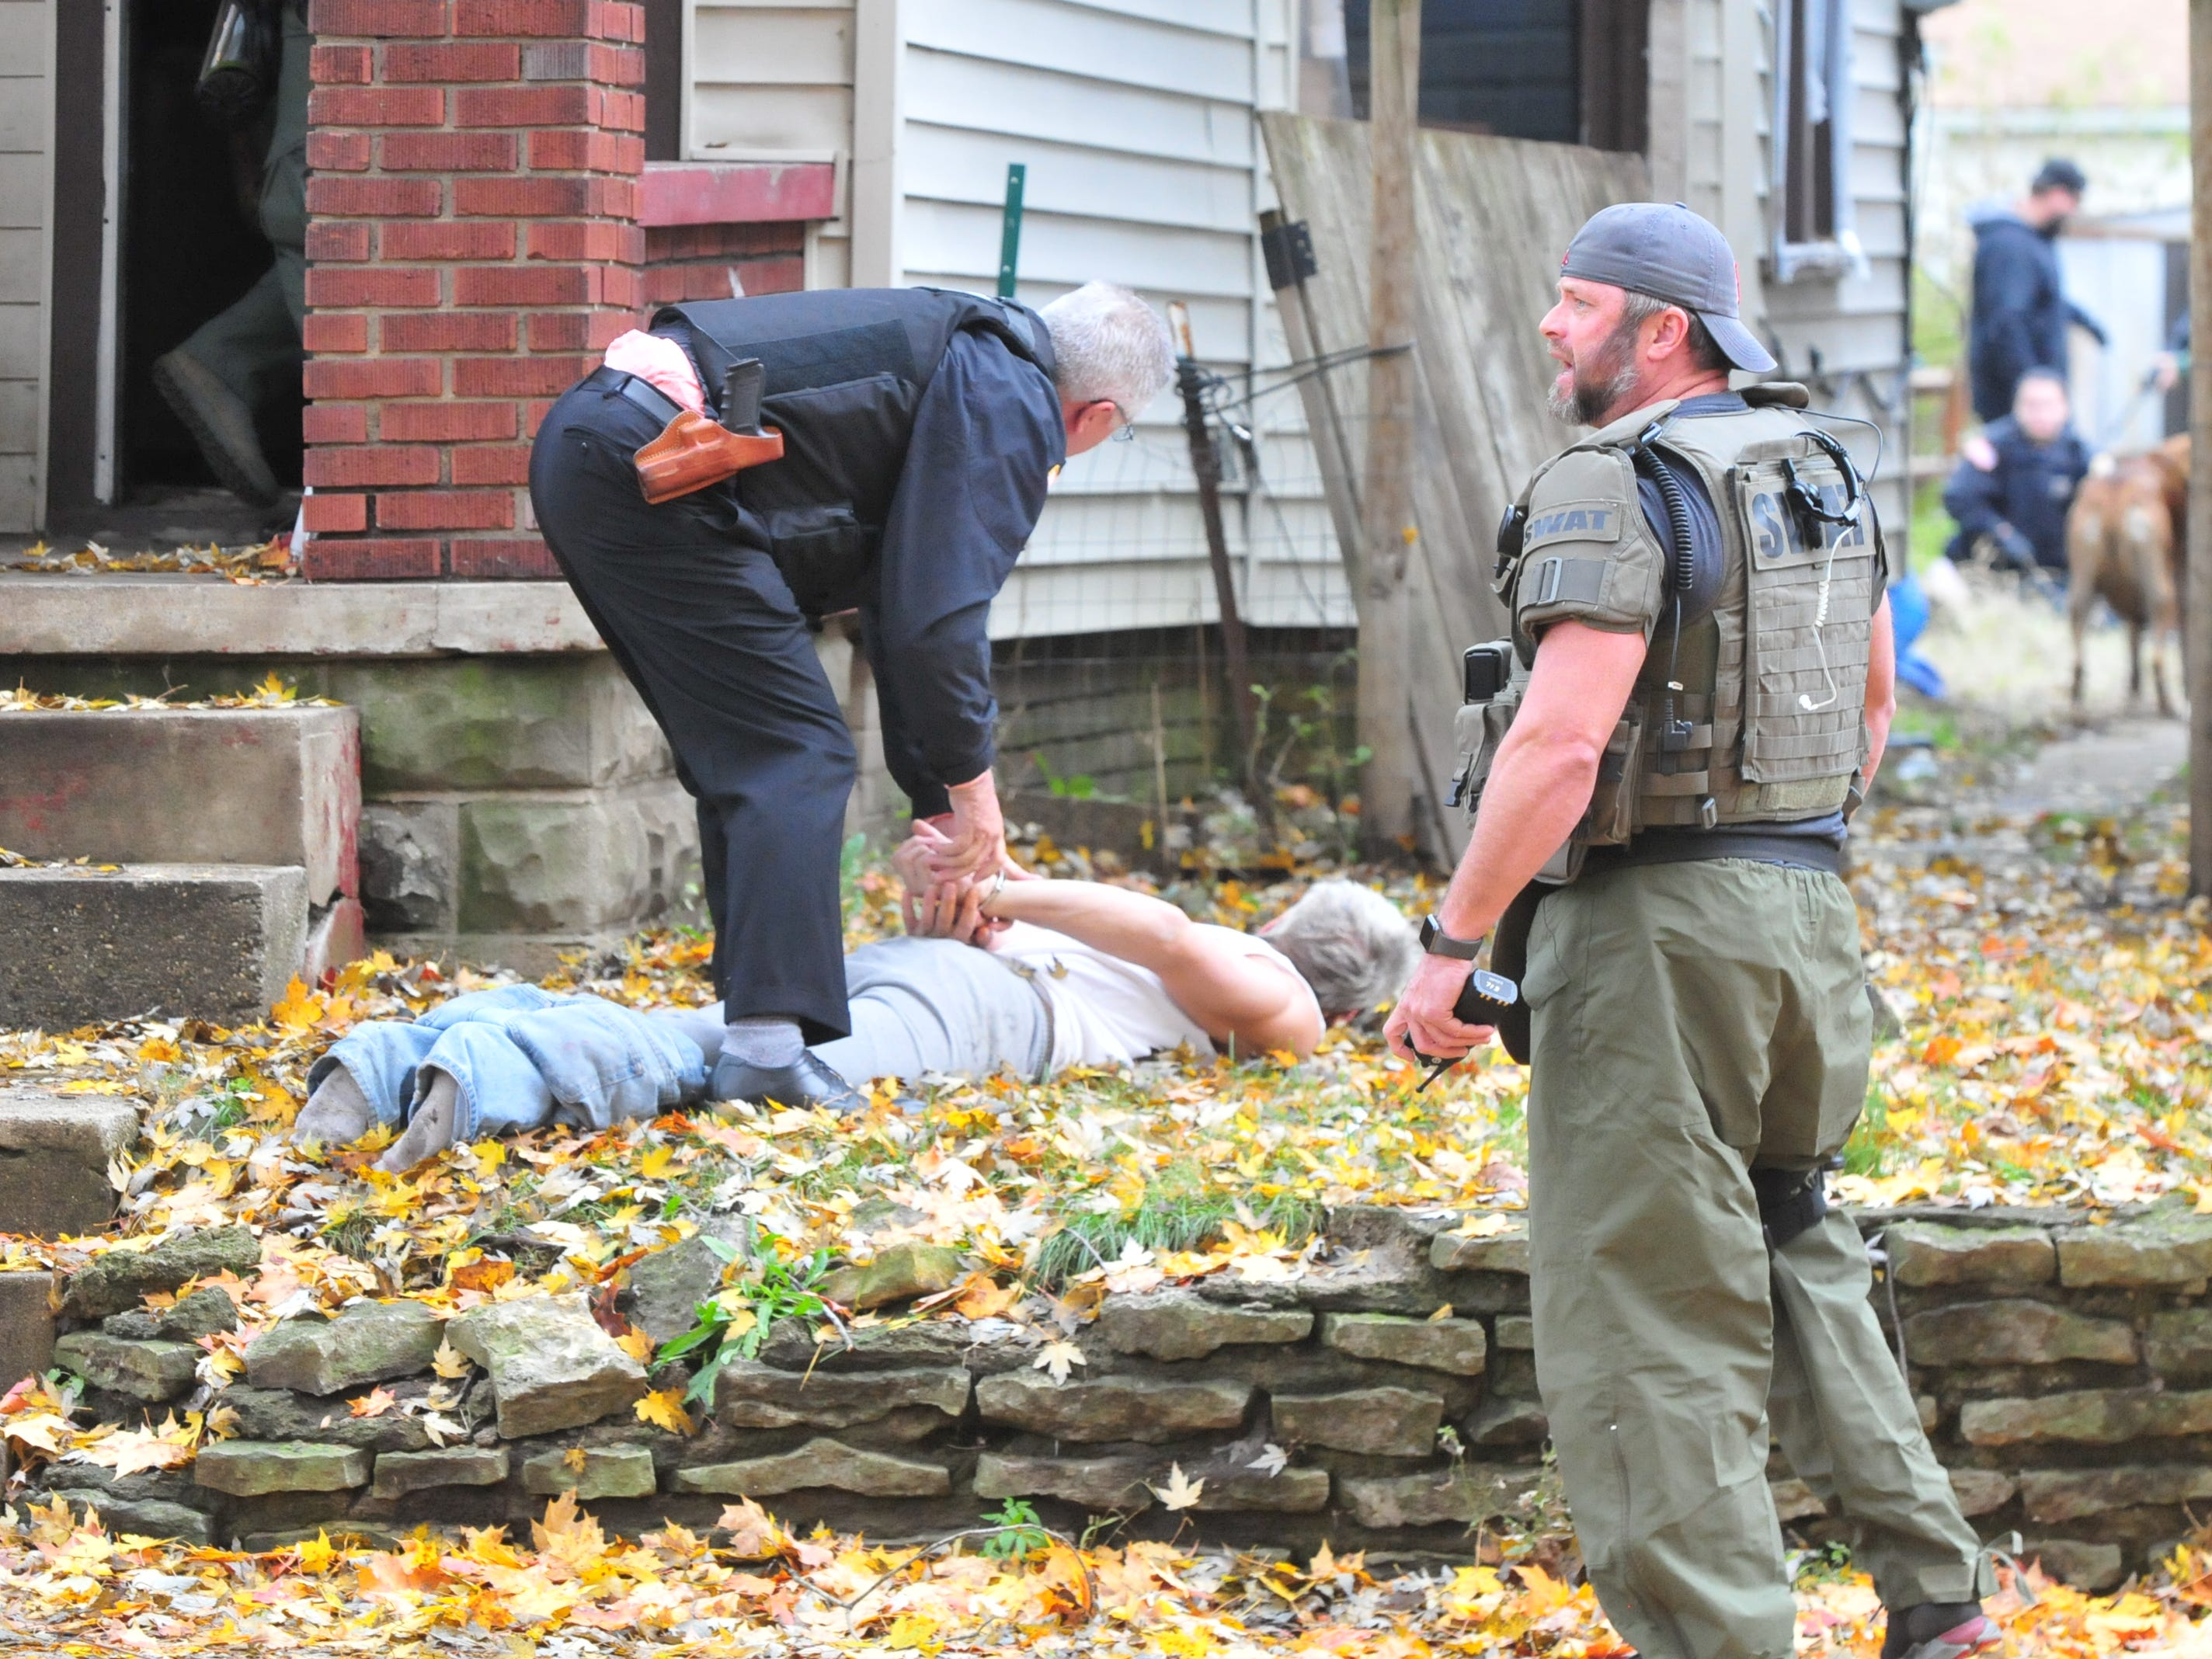 Lt. Donnie Benedict handcuffs James Hamilton as Lt. Scott Crull waits for more suspects to be removed from 219 N. 16th St. during a SWAT raid Monday.